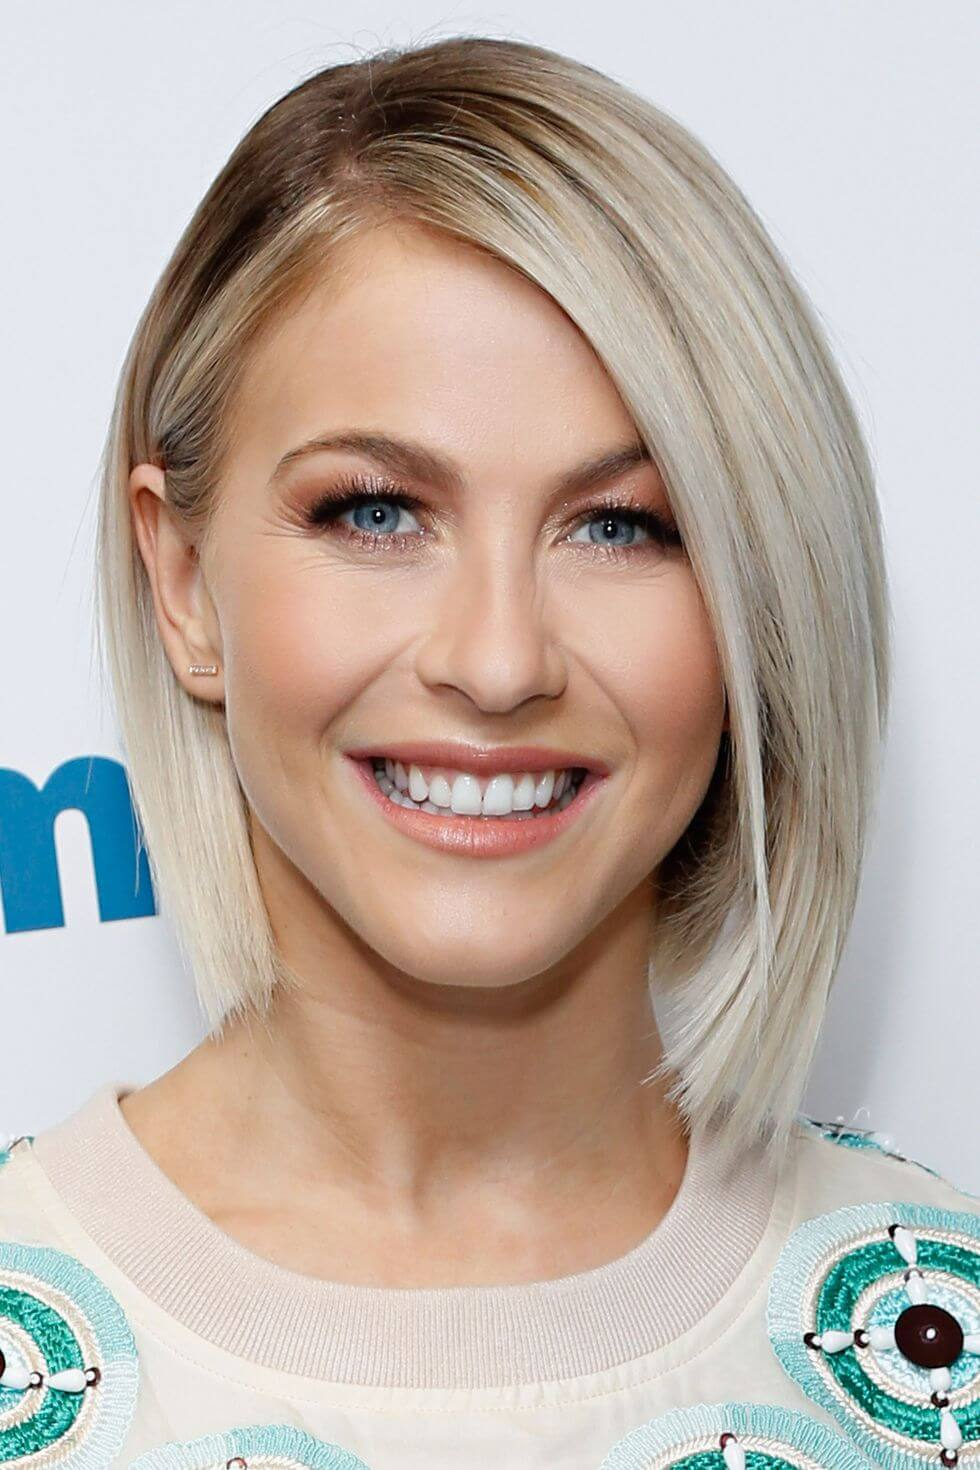 Women's Short Haircuts for Round Faces - 25+